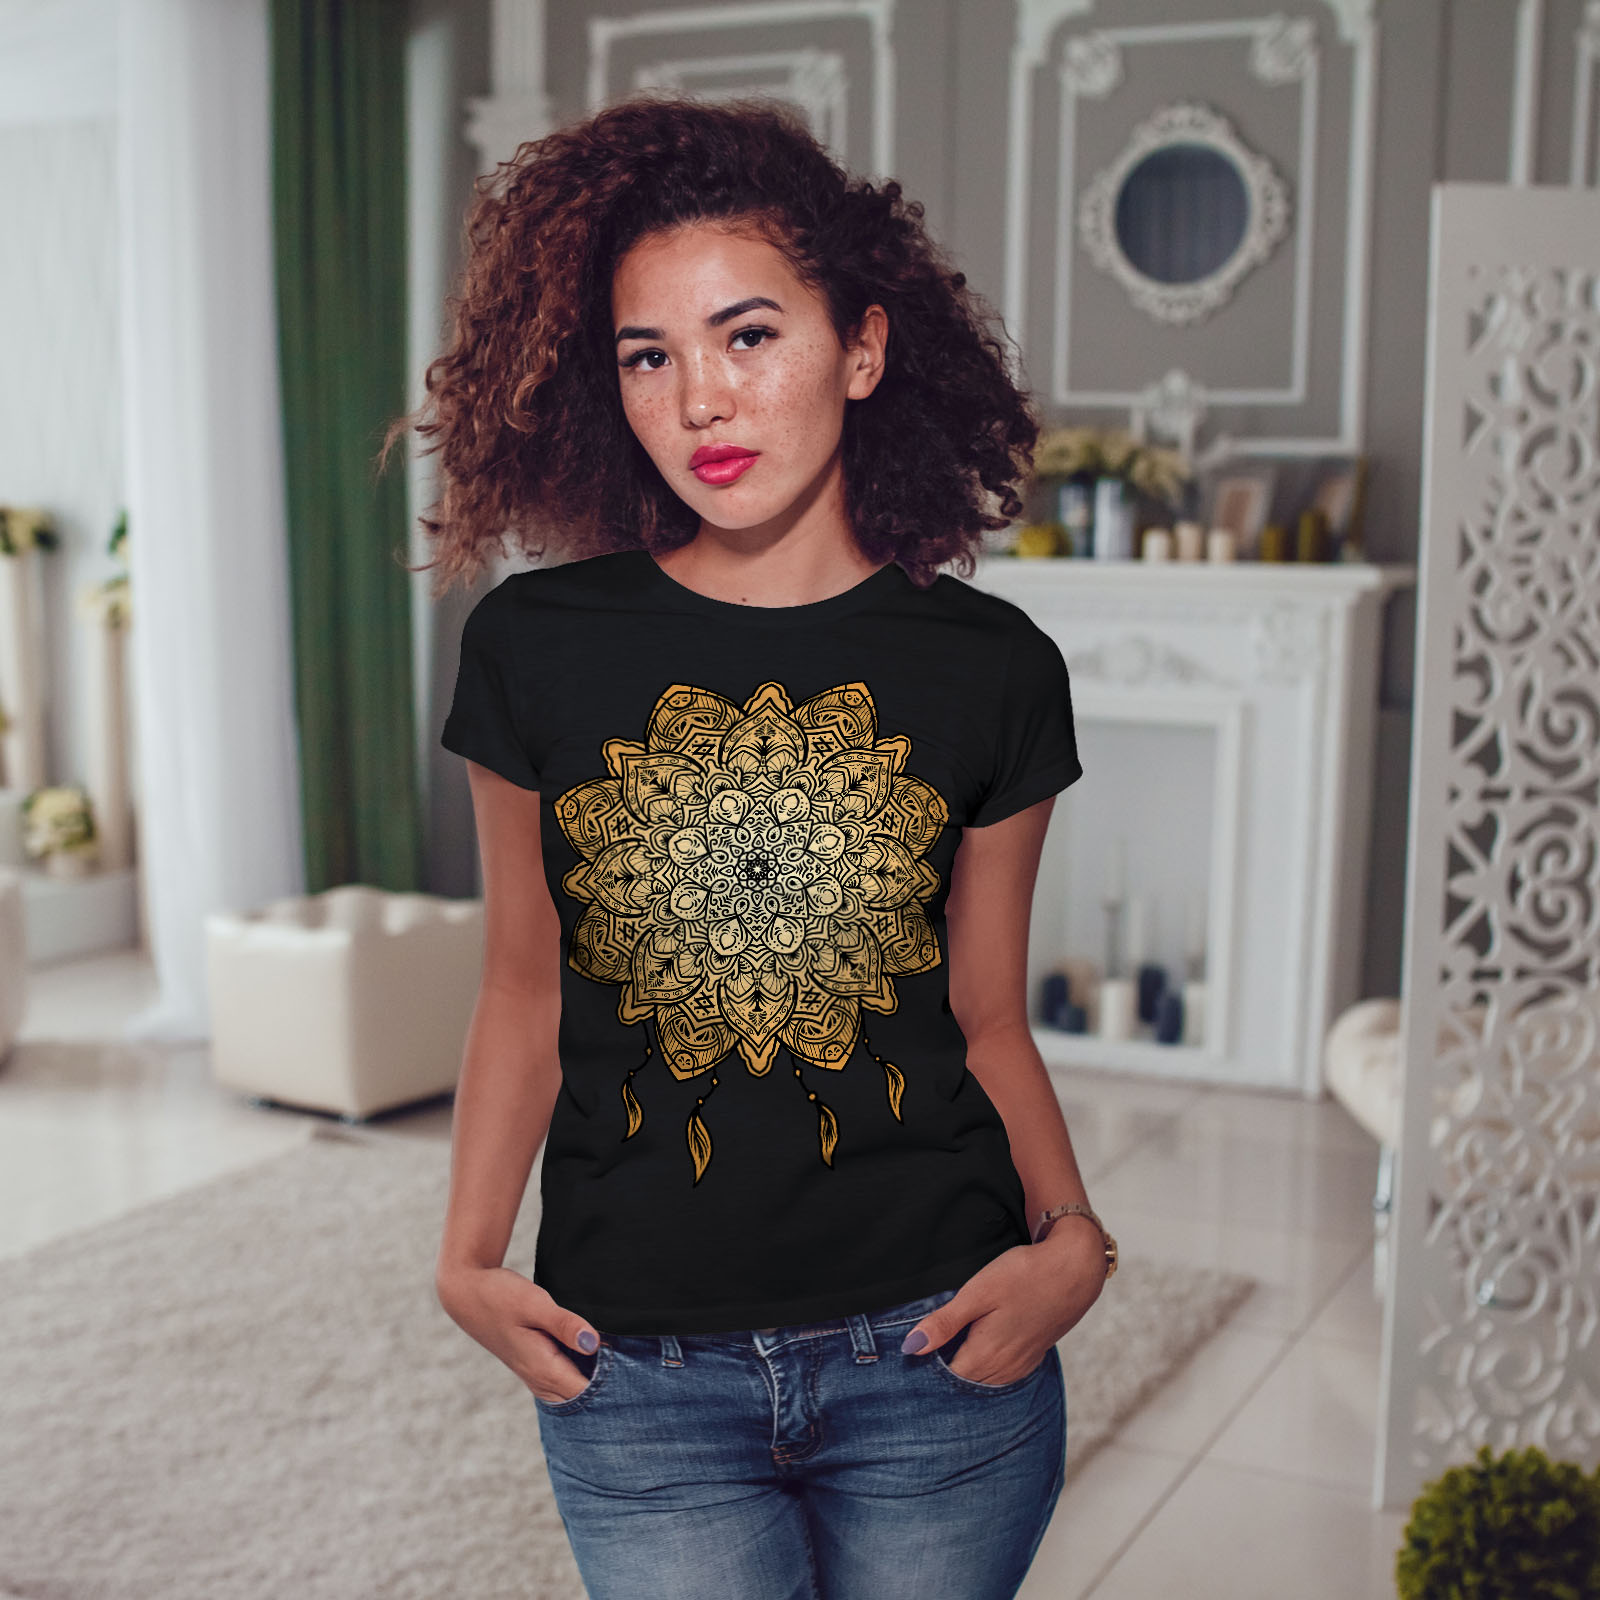 Wellcoda-Mandala-Yoga-Womens-T-shirt-Spiritual-Casual-Design-Printed-Tee thumbnail 5